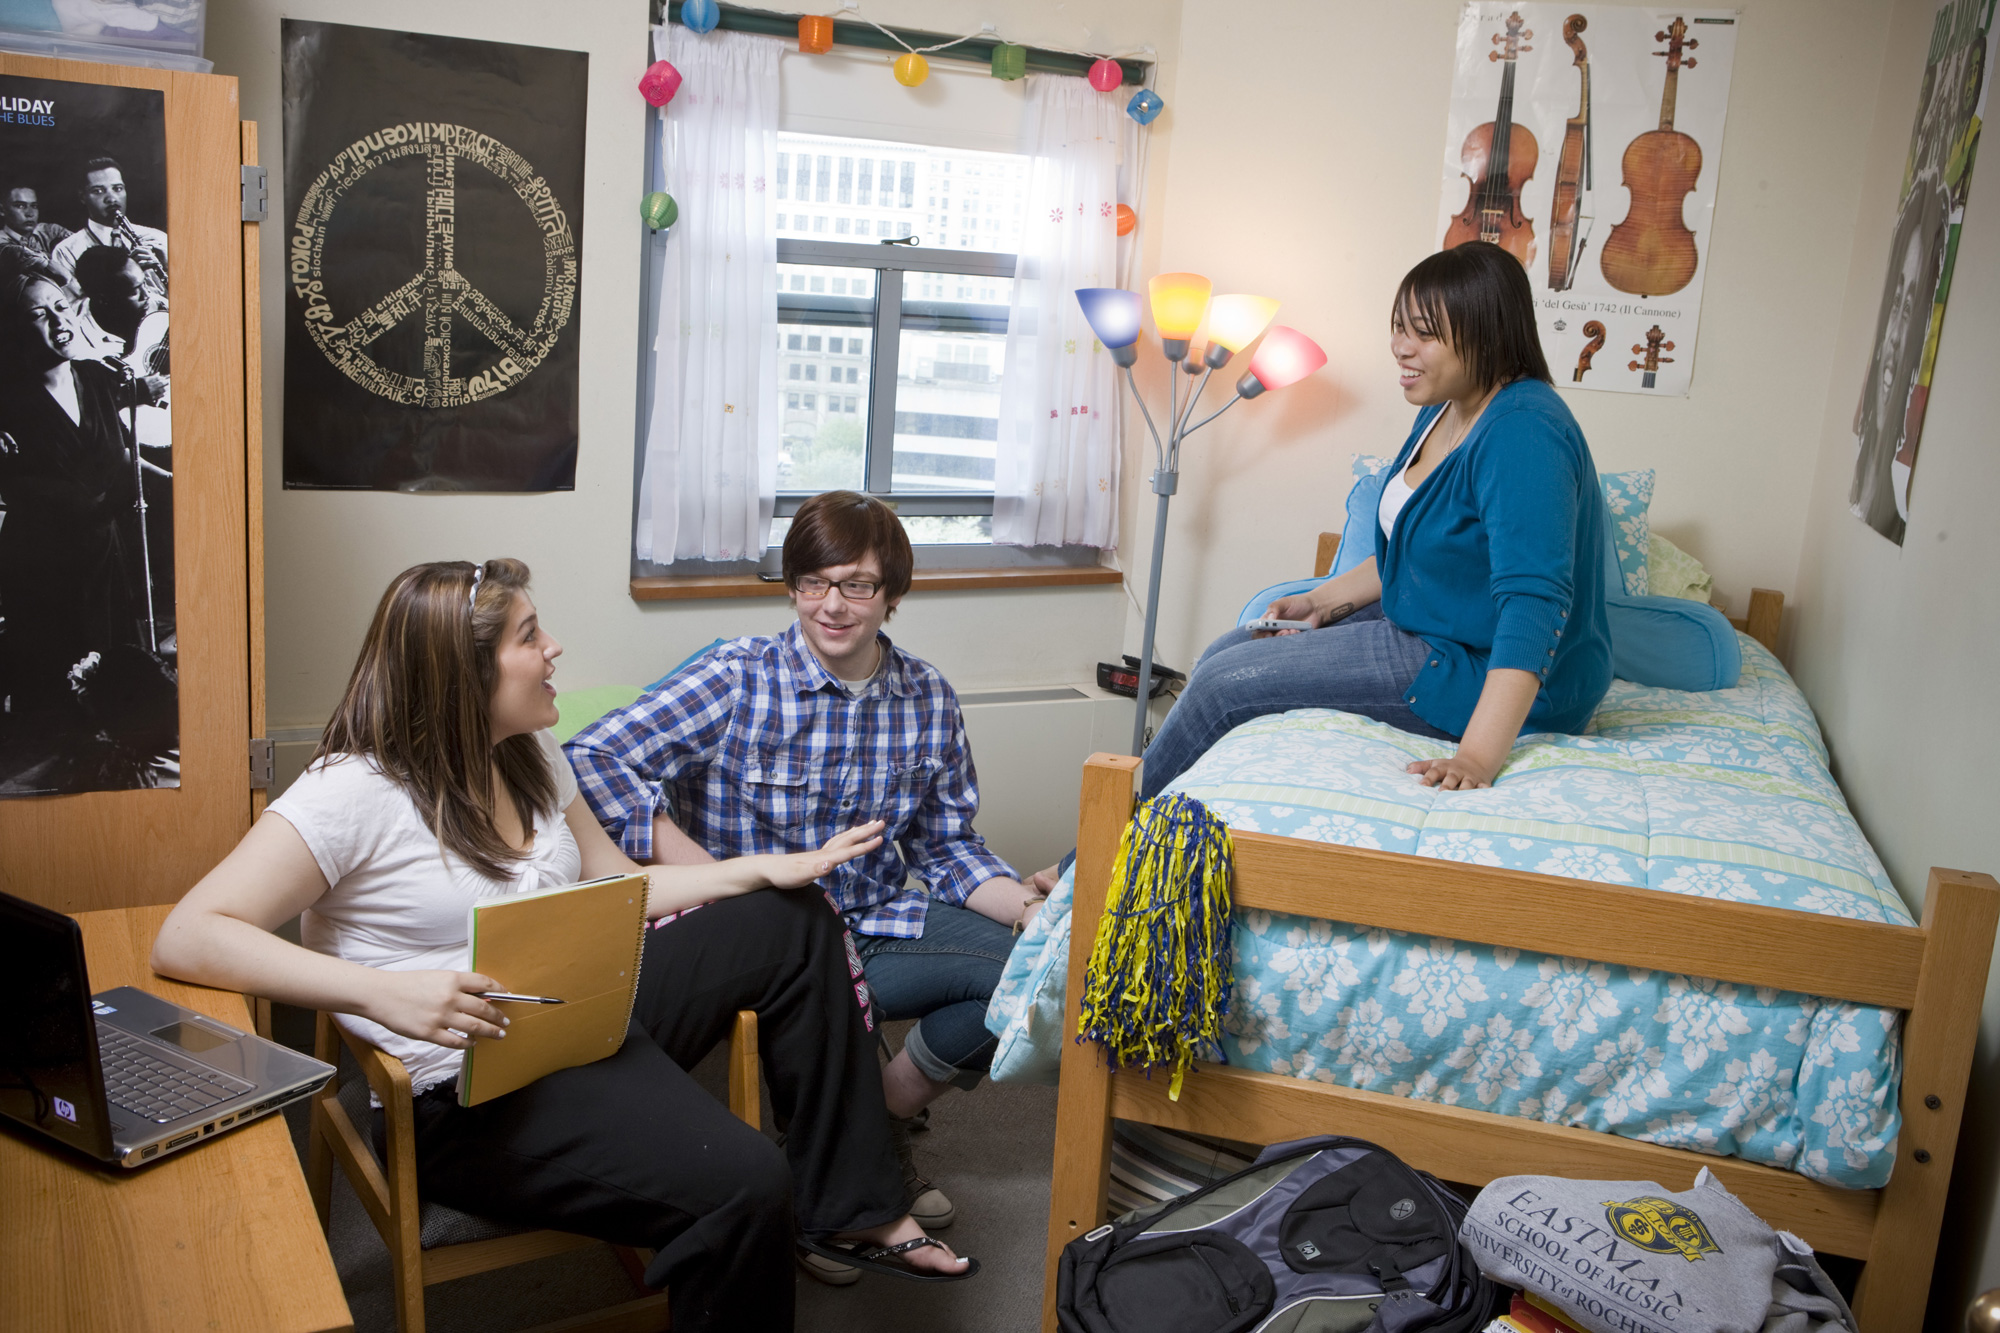 stress in students lives and living in the dorms Factors related to financial stress among college students stuart heckman ohio state education and student life administrators are becoming increasingly concerned.